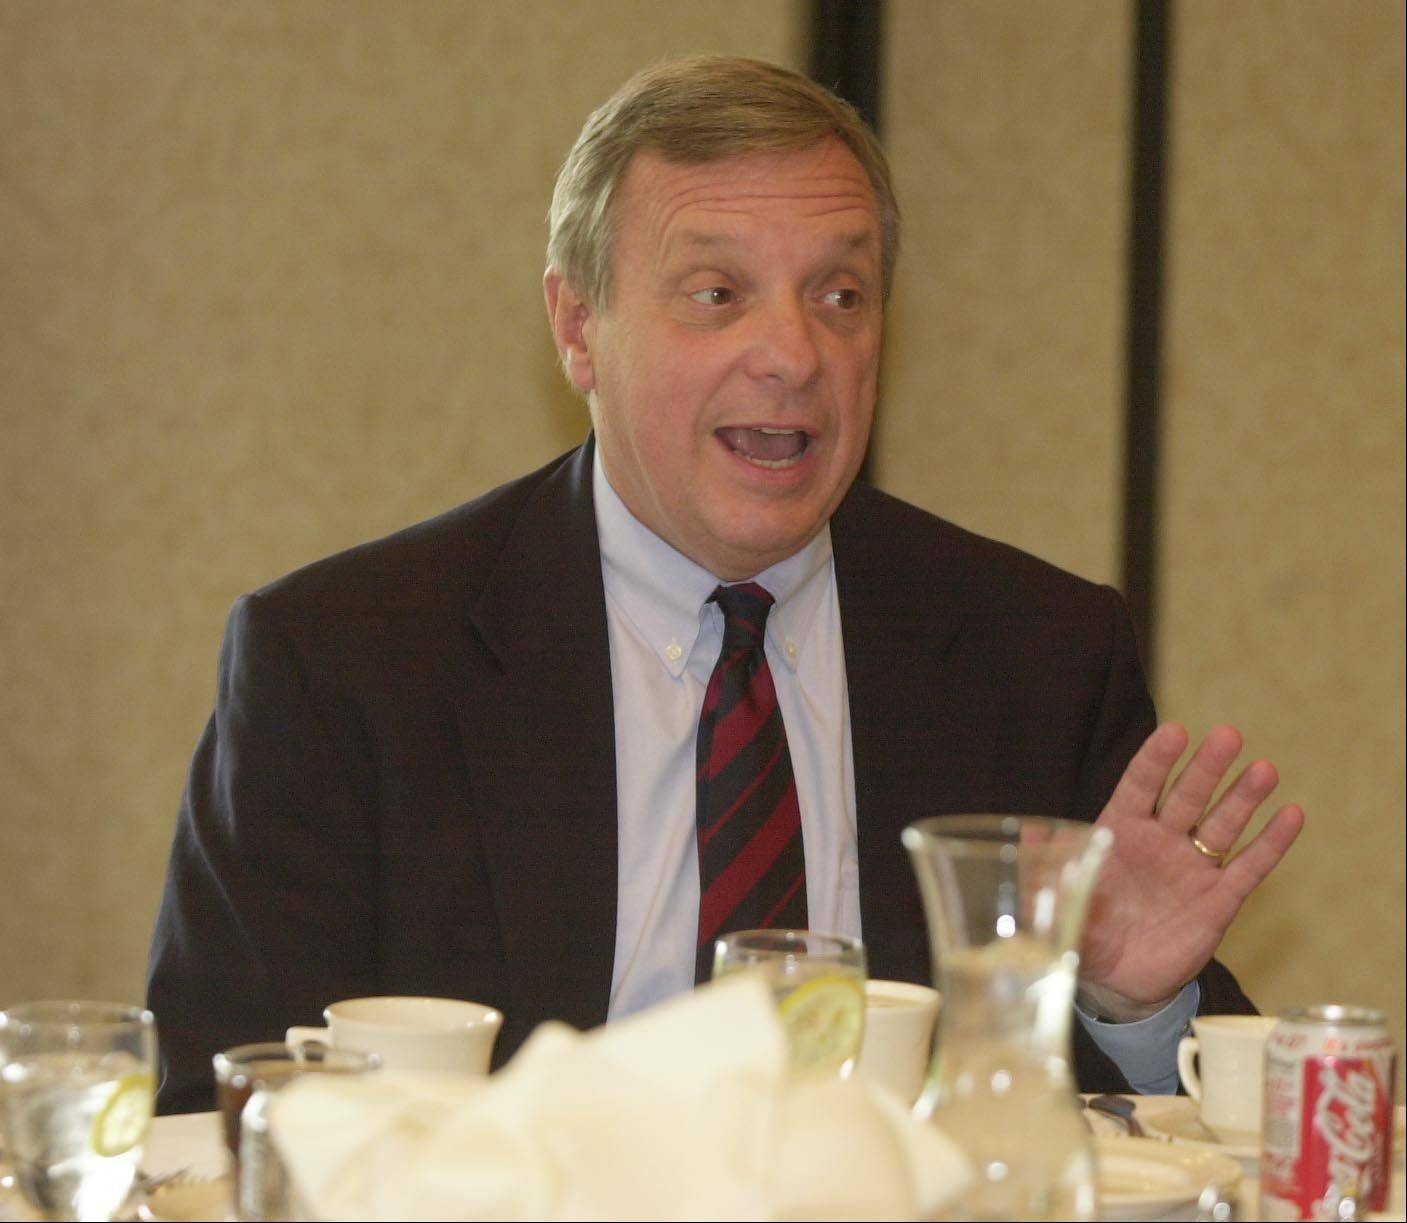 Sen. Dick Durbin has lunch with representatives from DuPage County at Bloomingdale Golf Course in this file photo from 2004.